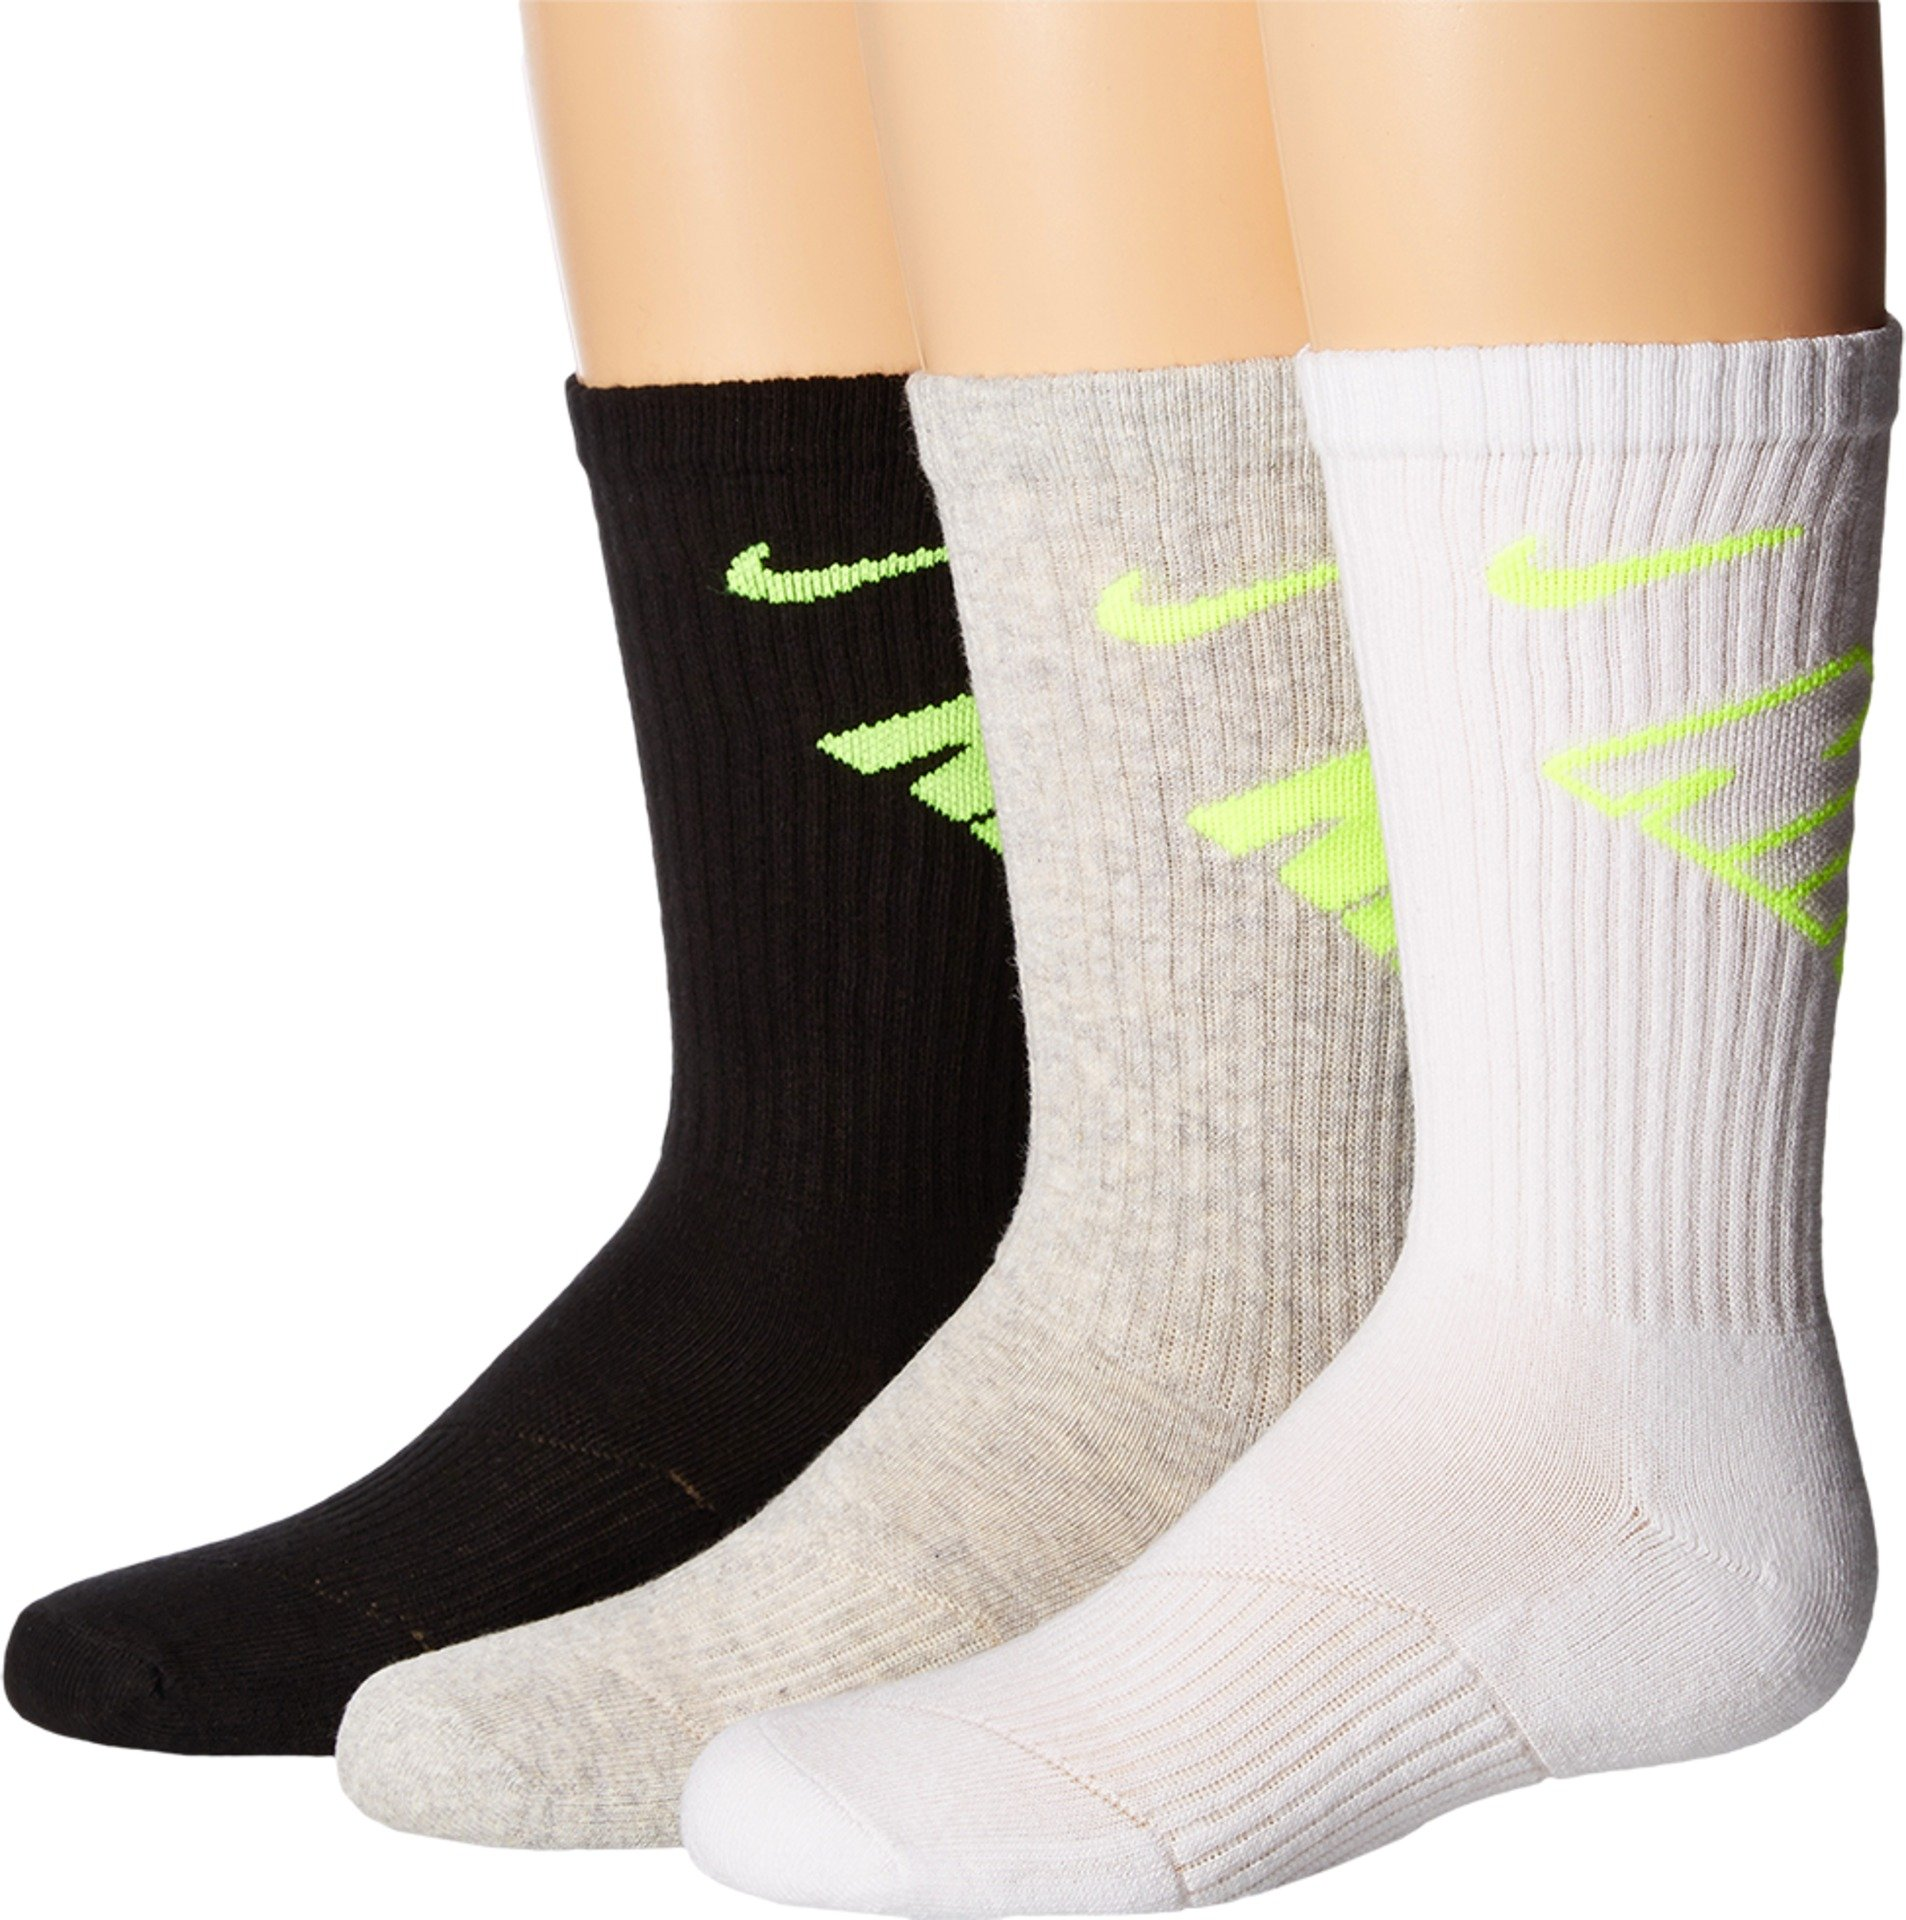 Nike 3 pack socks Crew Performance Cotton Cushioned Black/grey/white